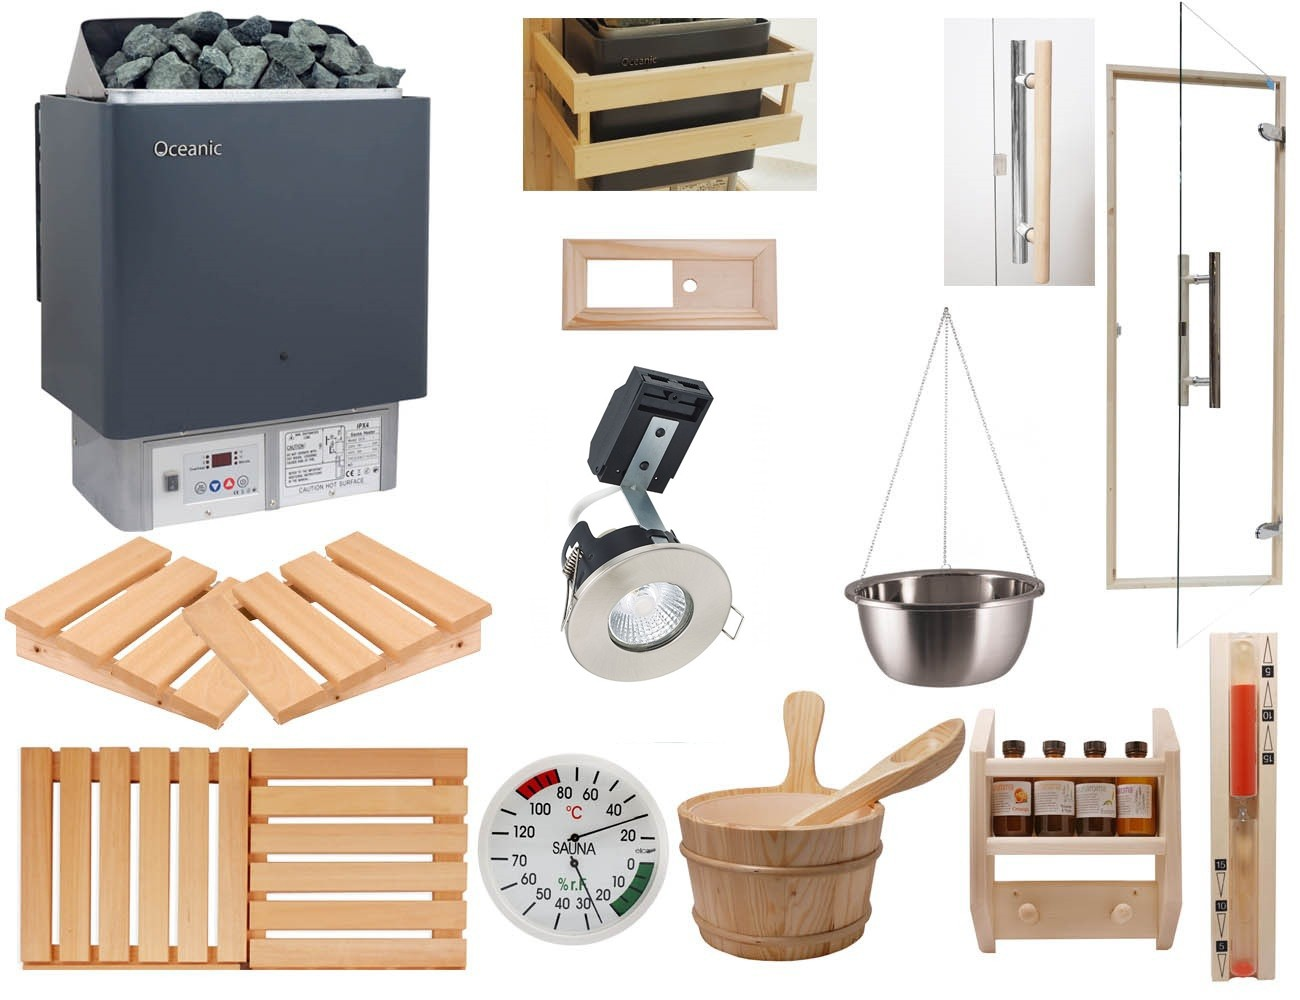 Domestic Deluxe Sauna Kit with Built in Control Heater